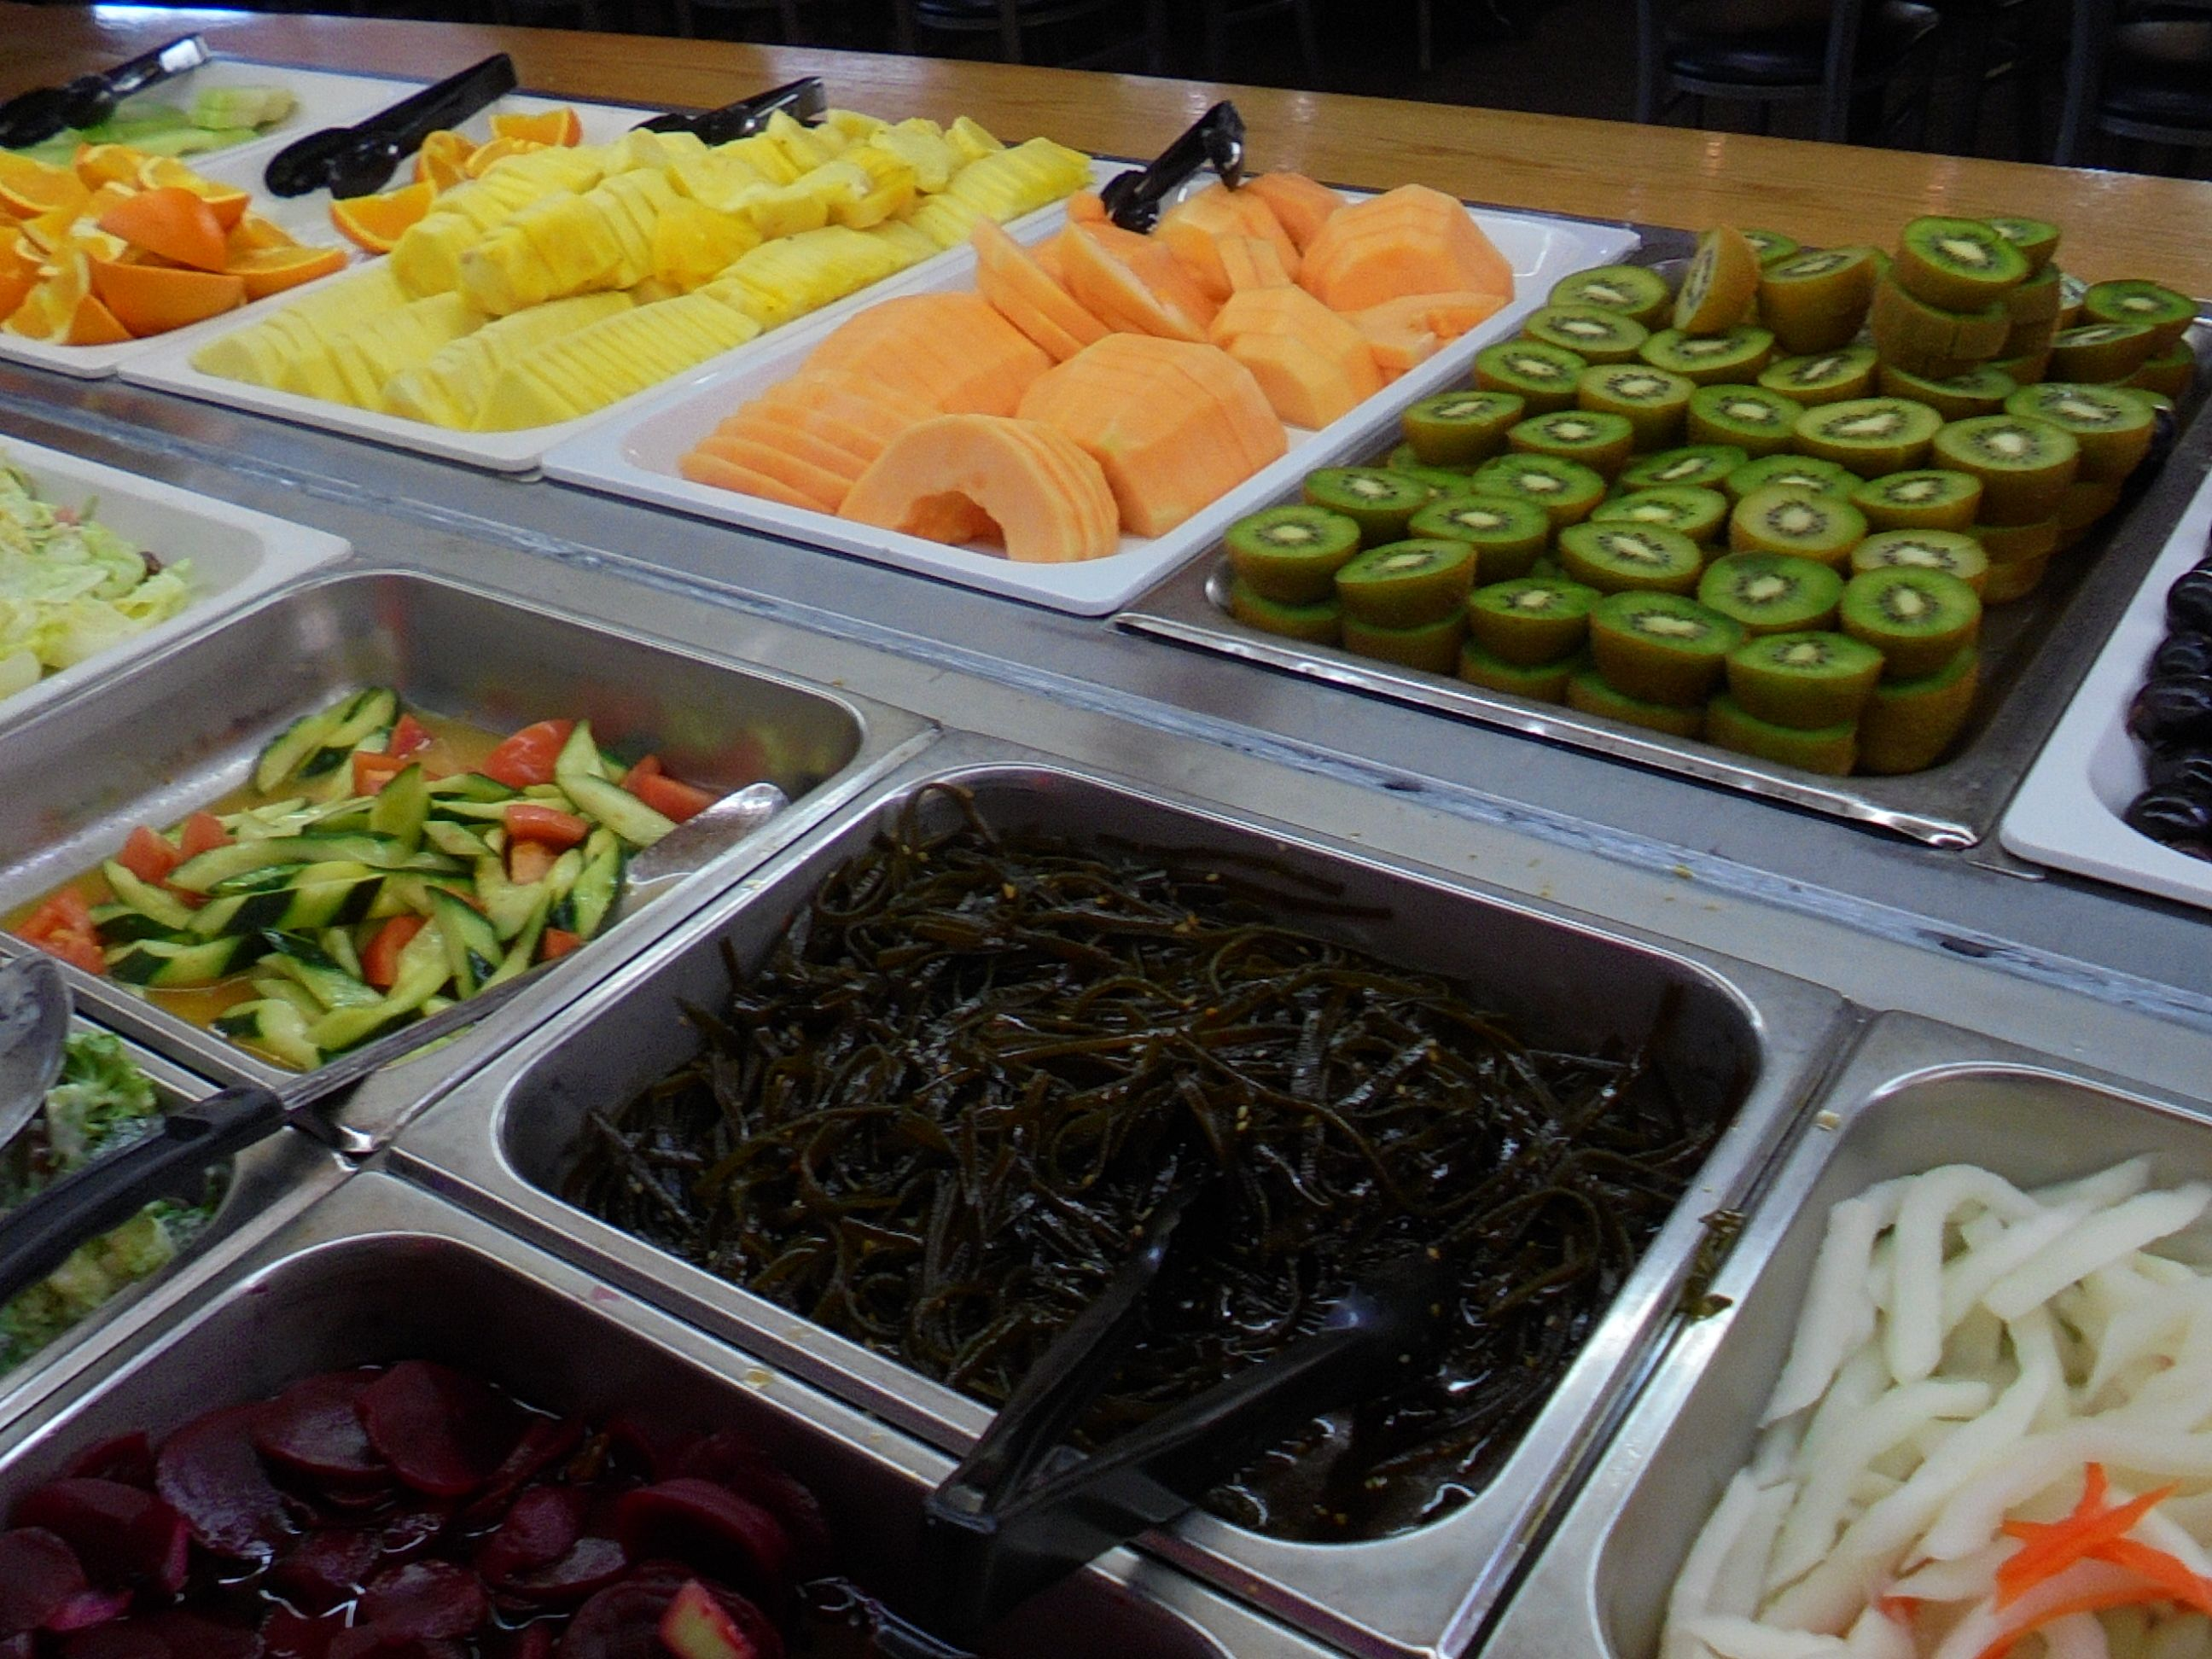 #Selection of #fruit, #dessert #and #vegetables - www.drewrynewsnetwork.com